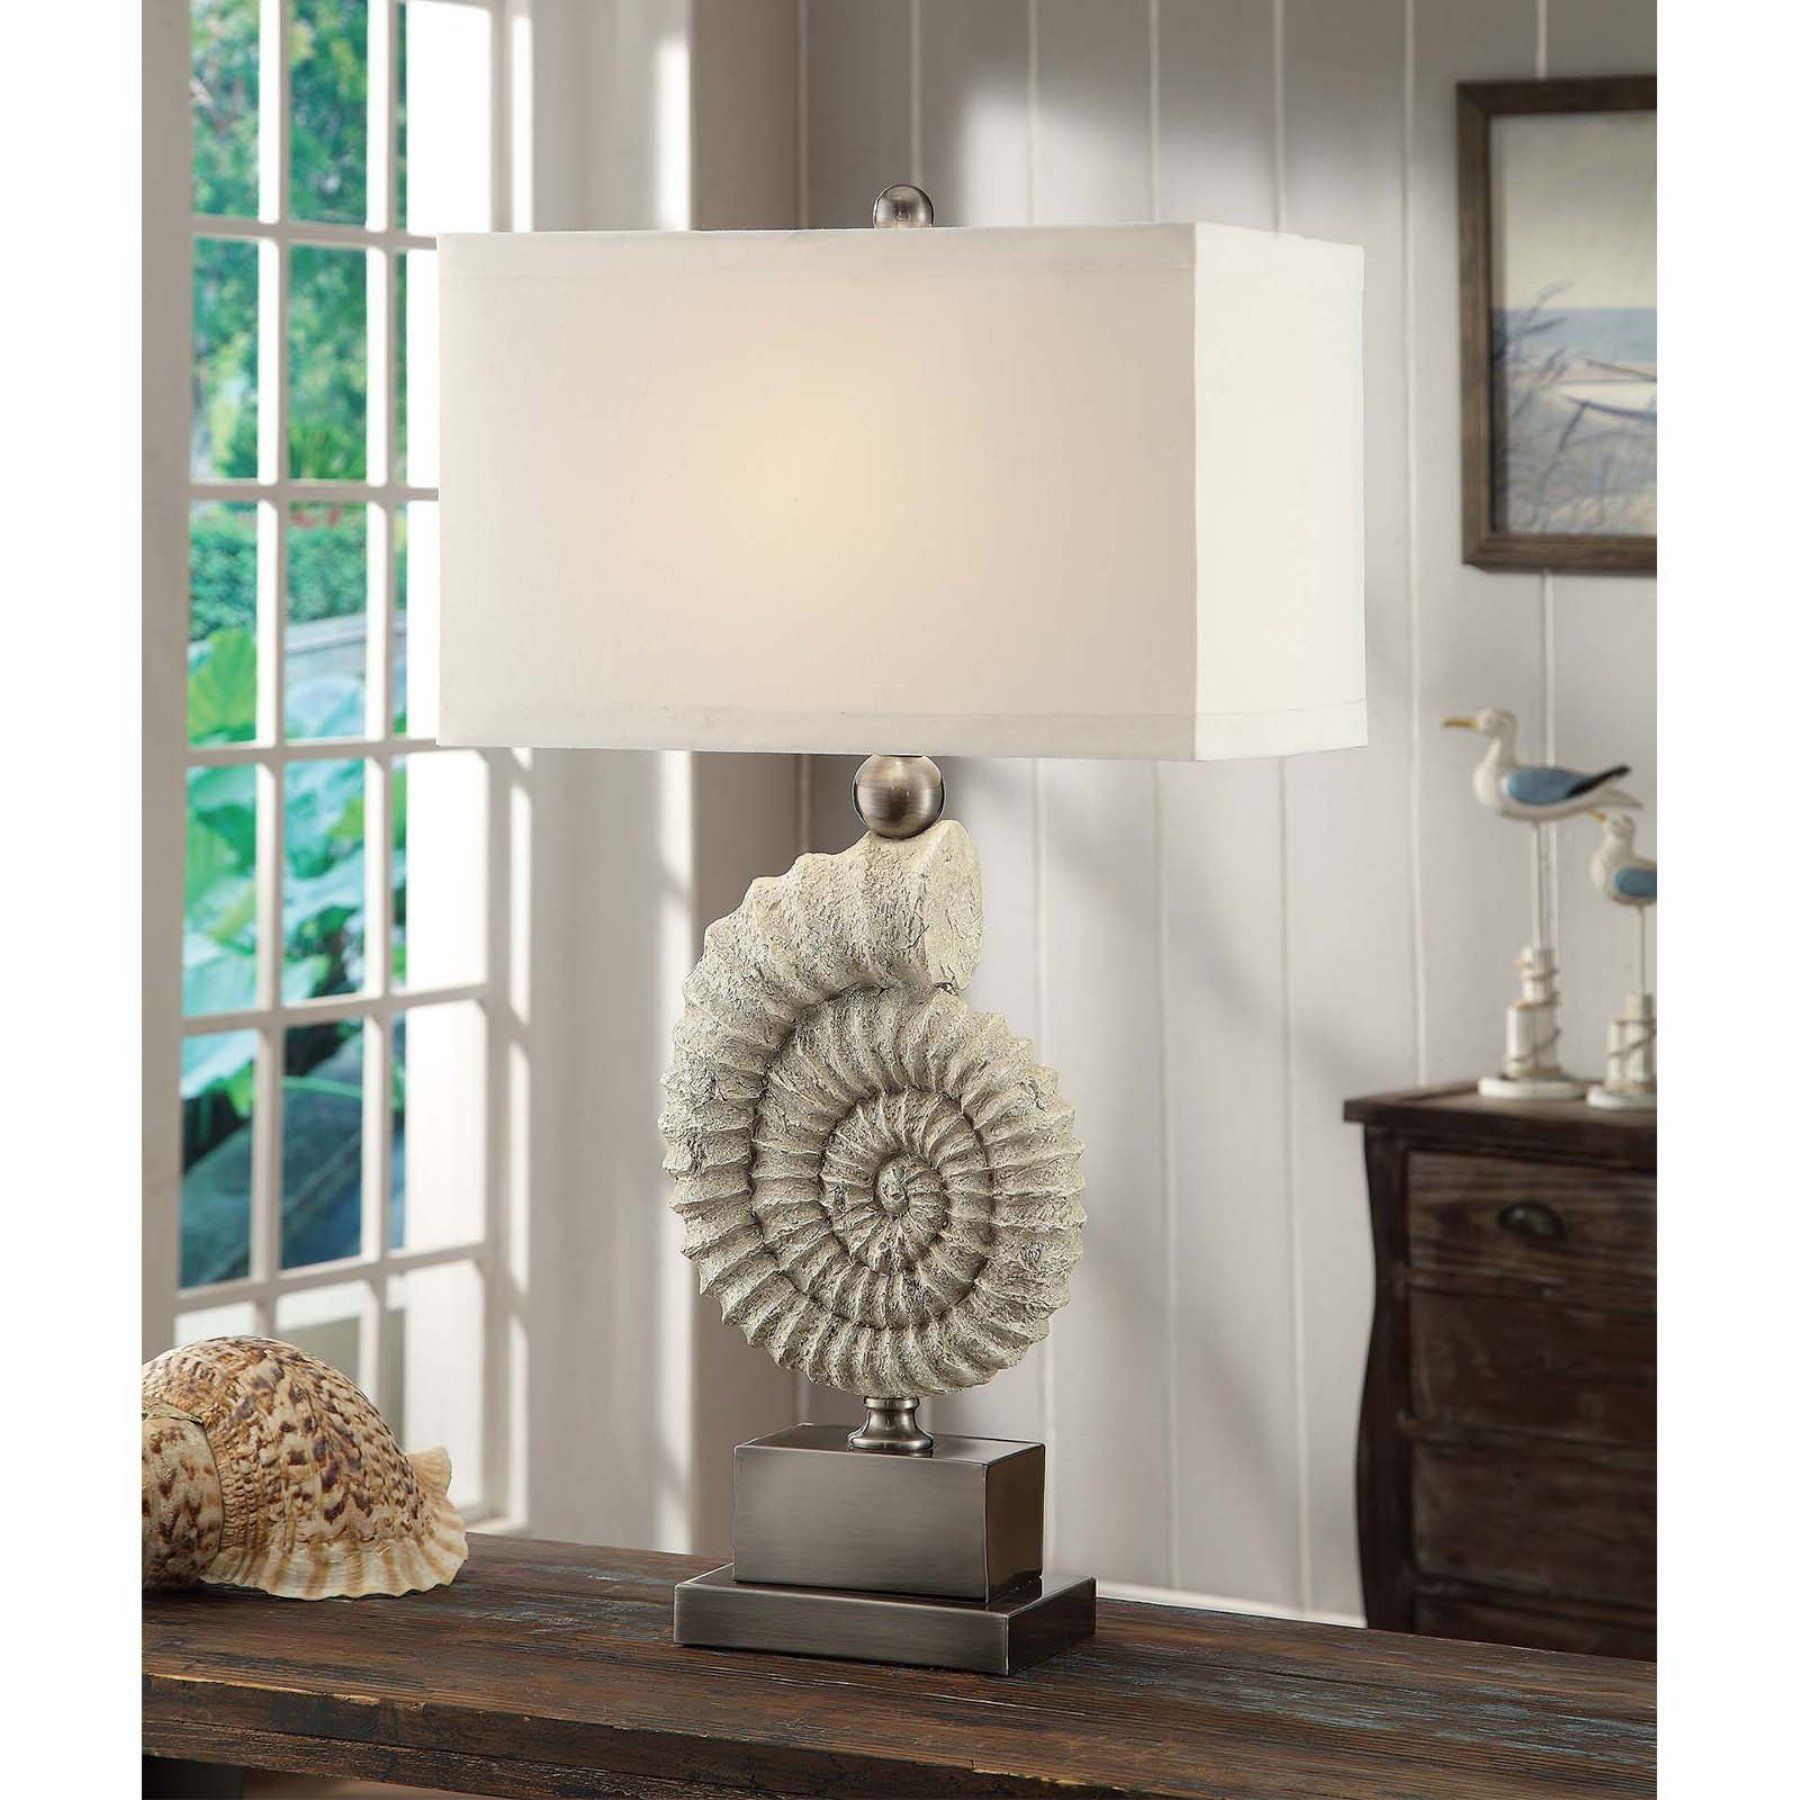 Crestview collection maritime table lamp cvaup818 products crestview collection maritime table lamp cvaup818 geotapseo Gallery